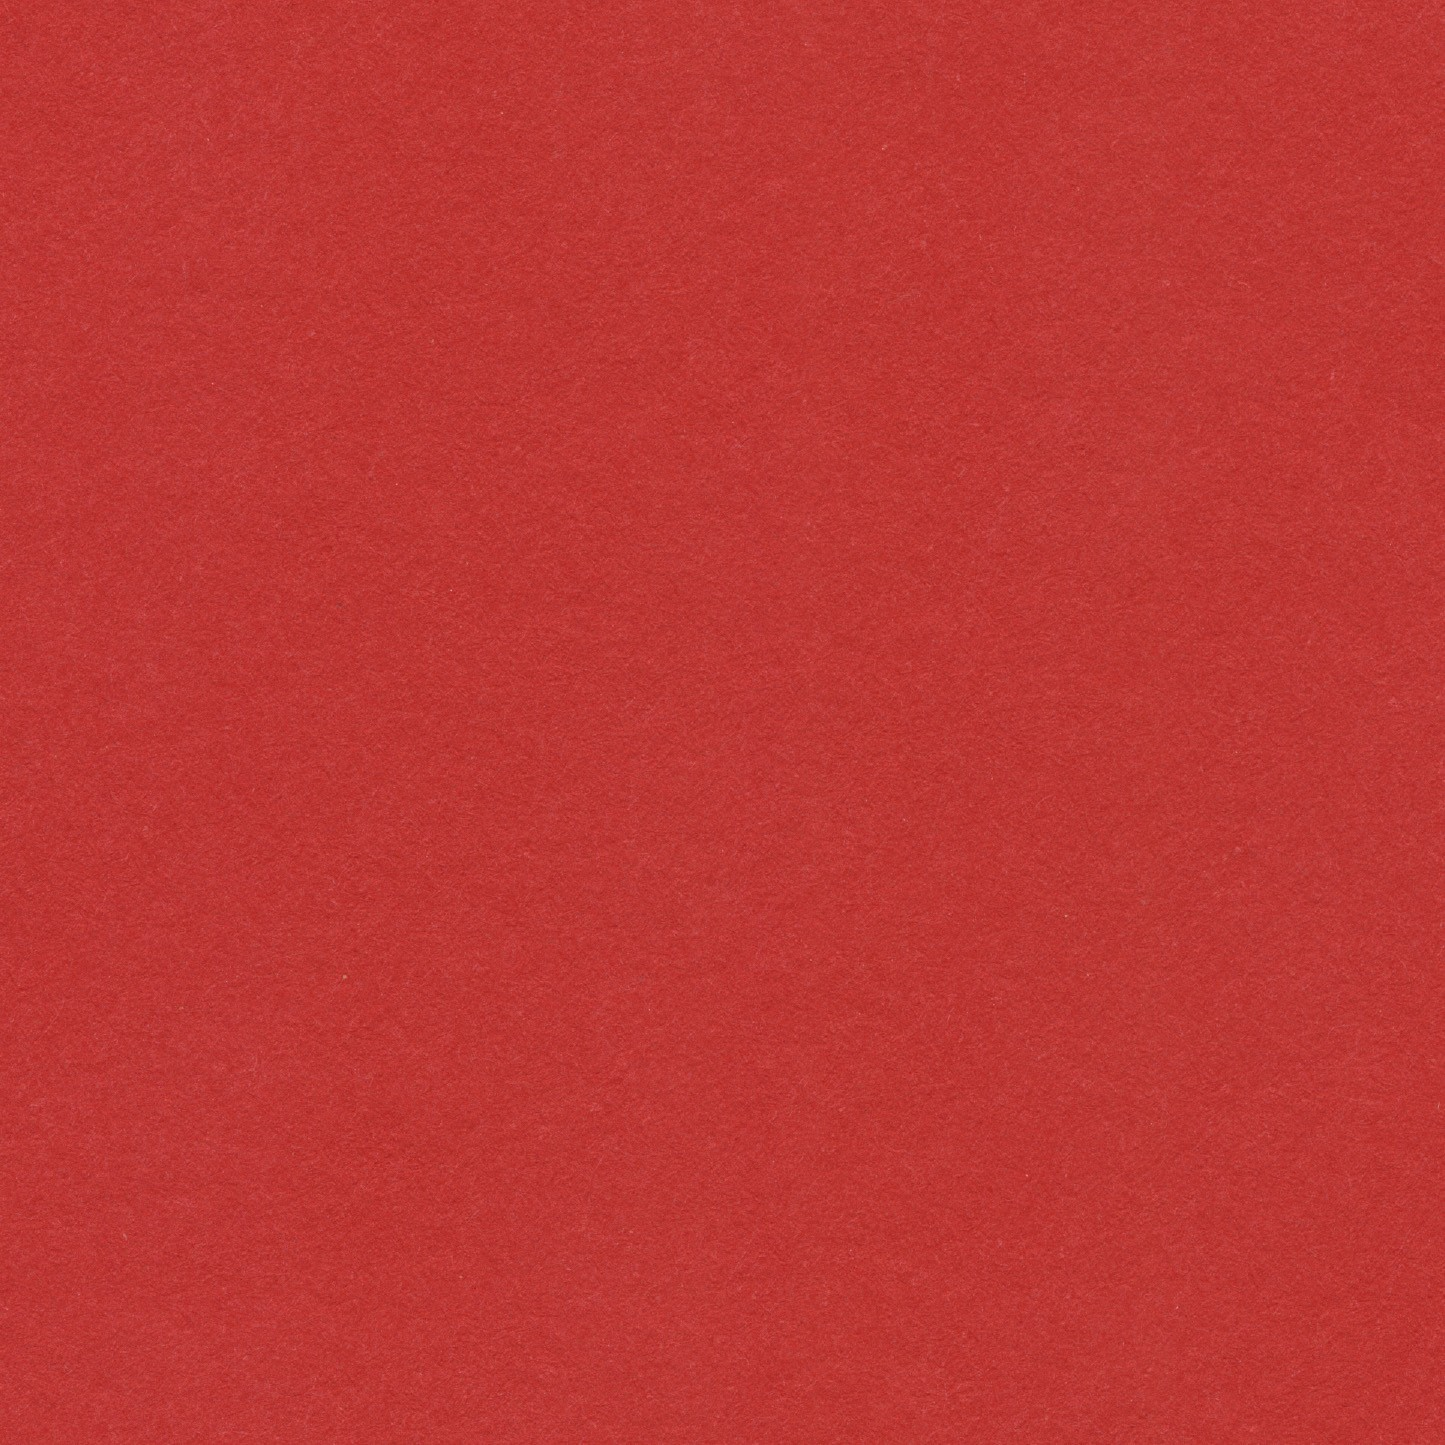 Red - Bright 150gsm